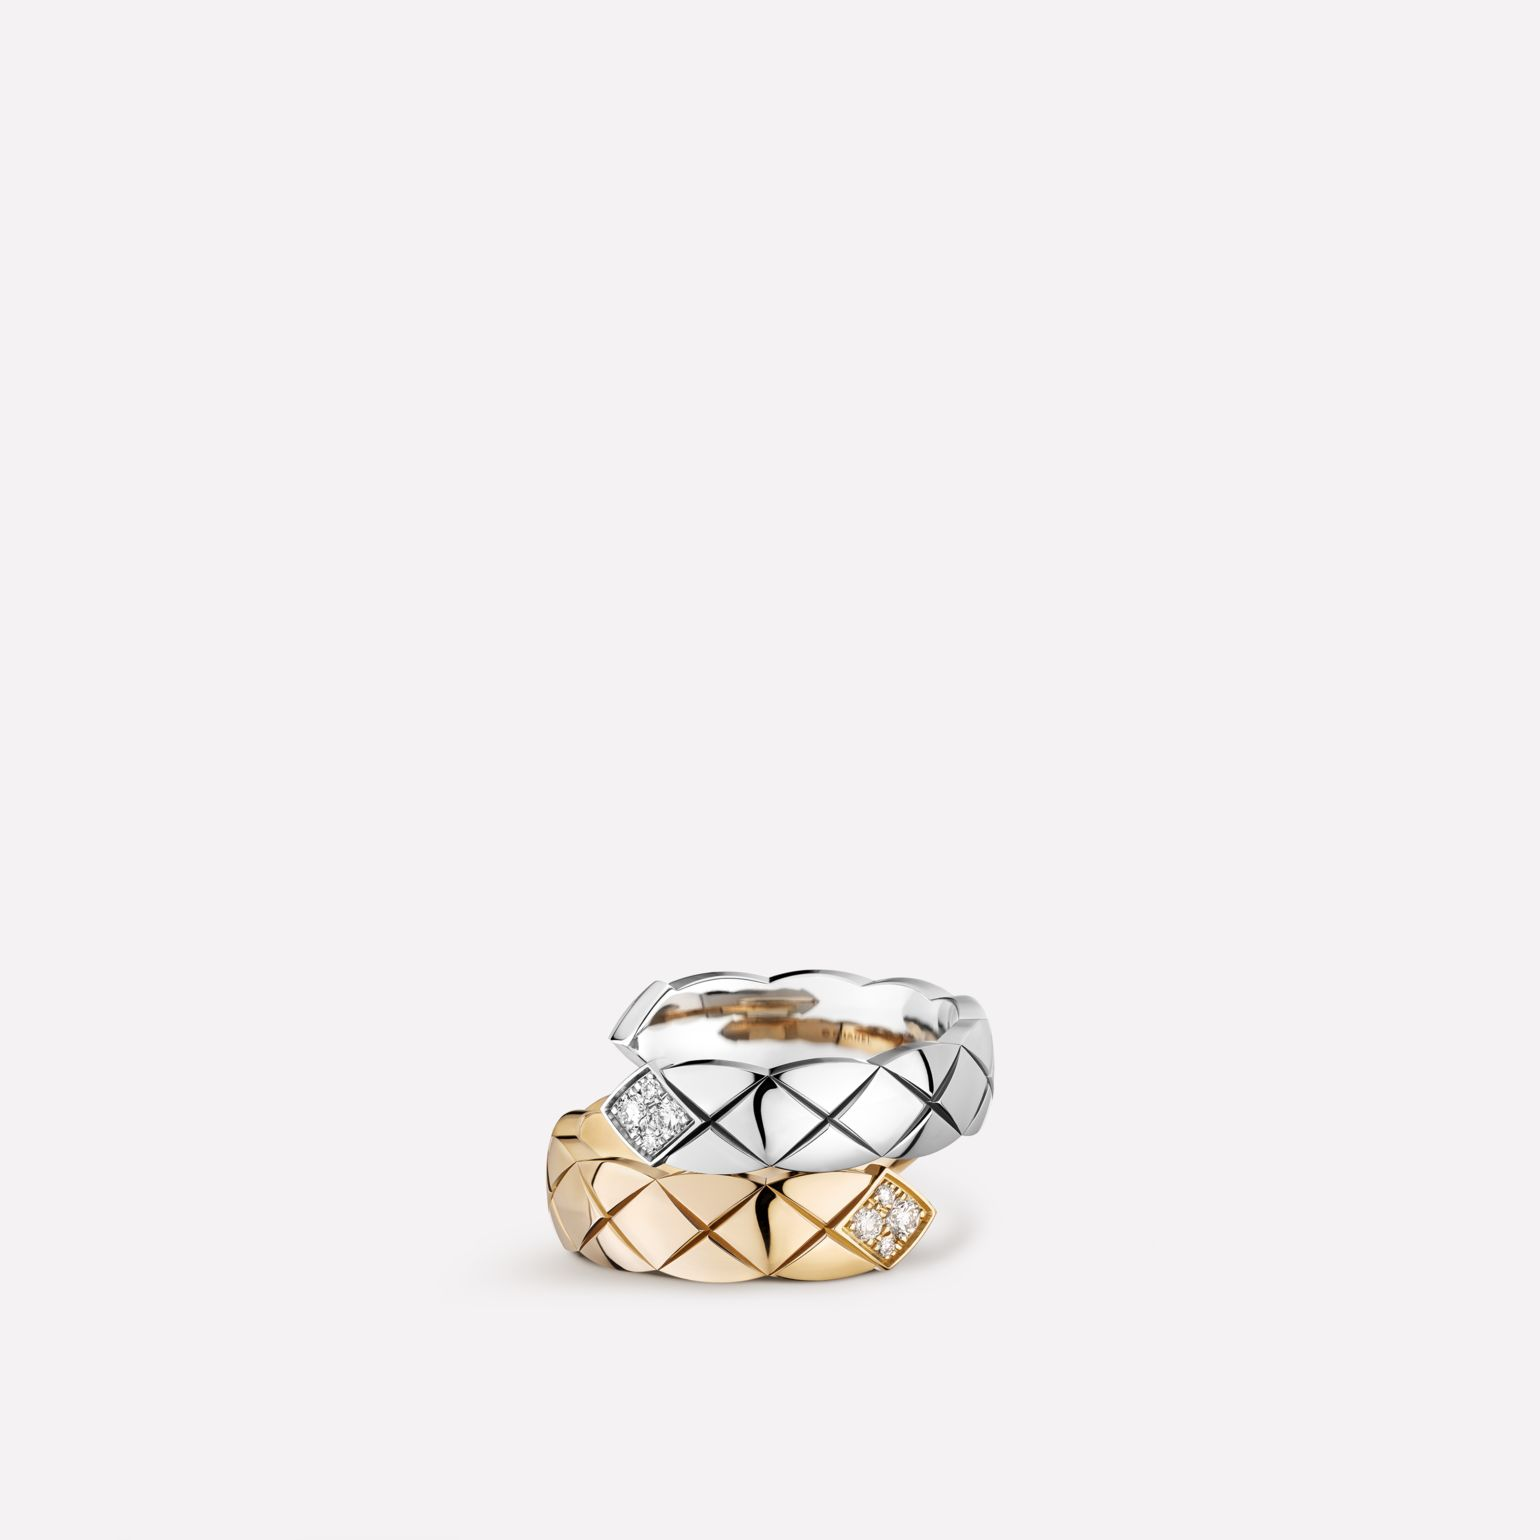 Coco Crush Toi et Moi ring Quilted motif, large version, 18K white and BEIGE GOLD, diamonds